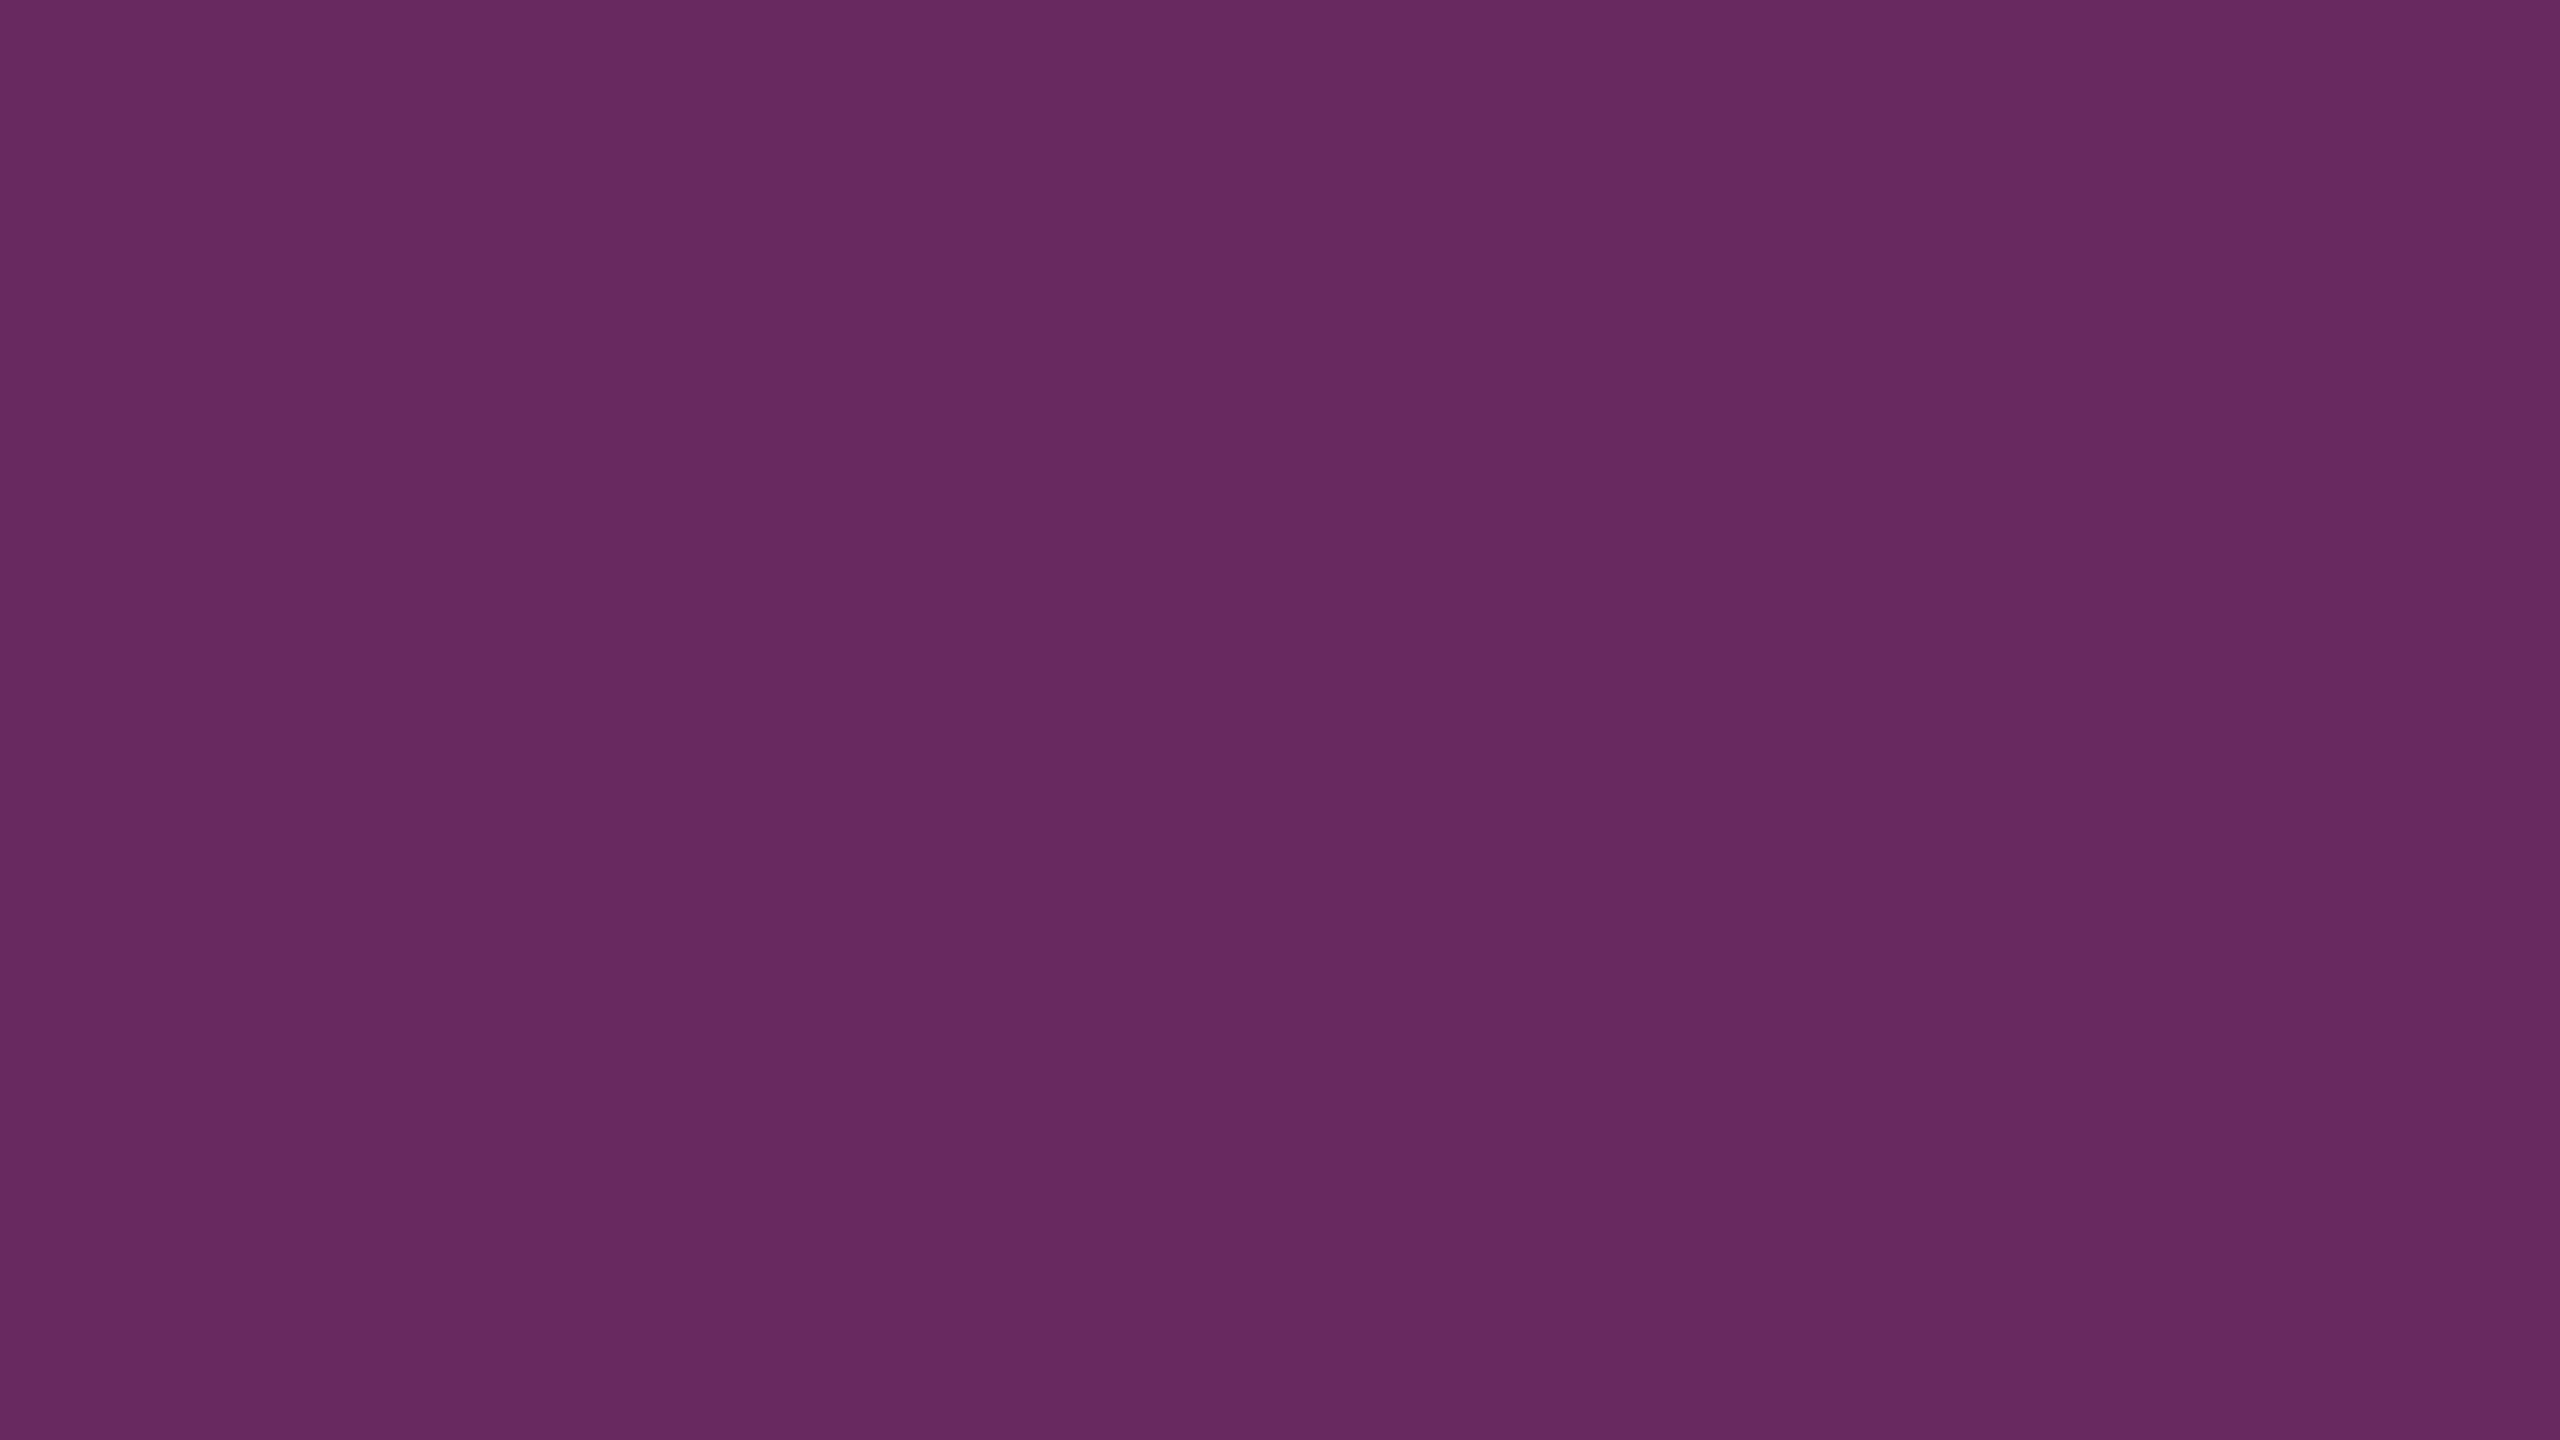 2560x1440 Palatinate Purple Solid Color Background